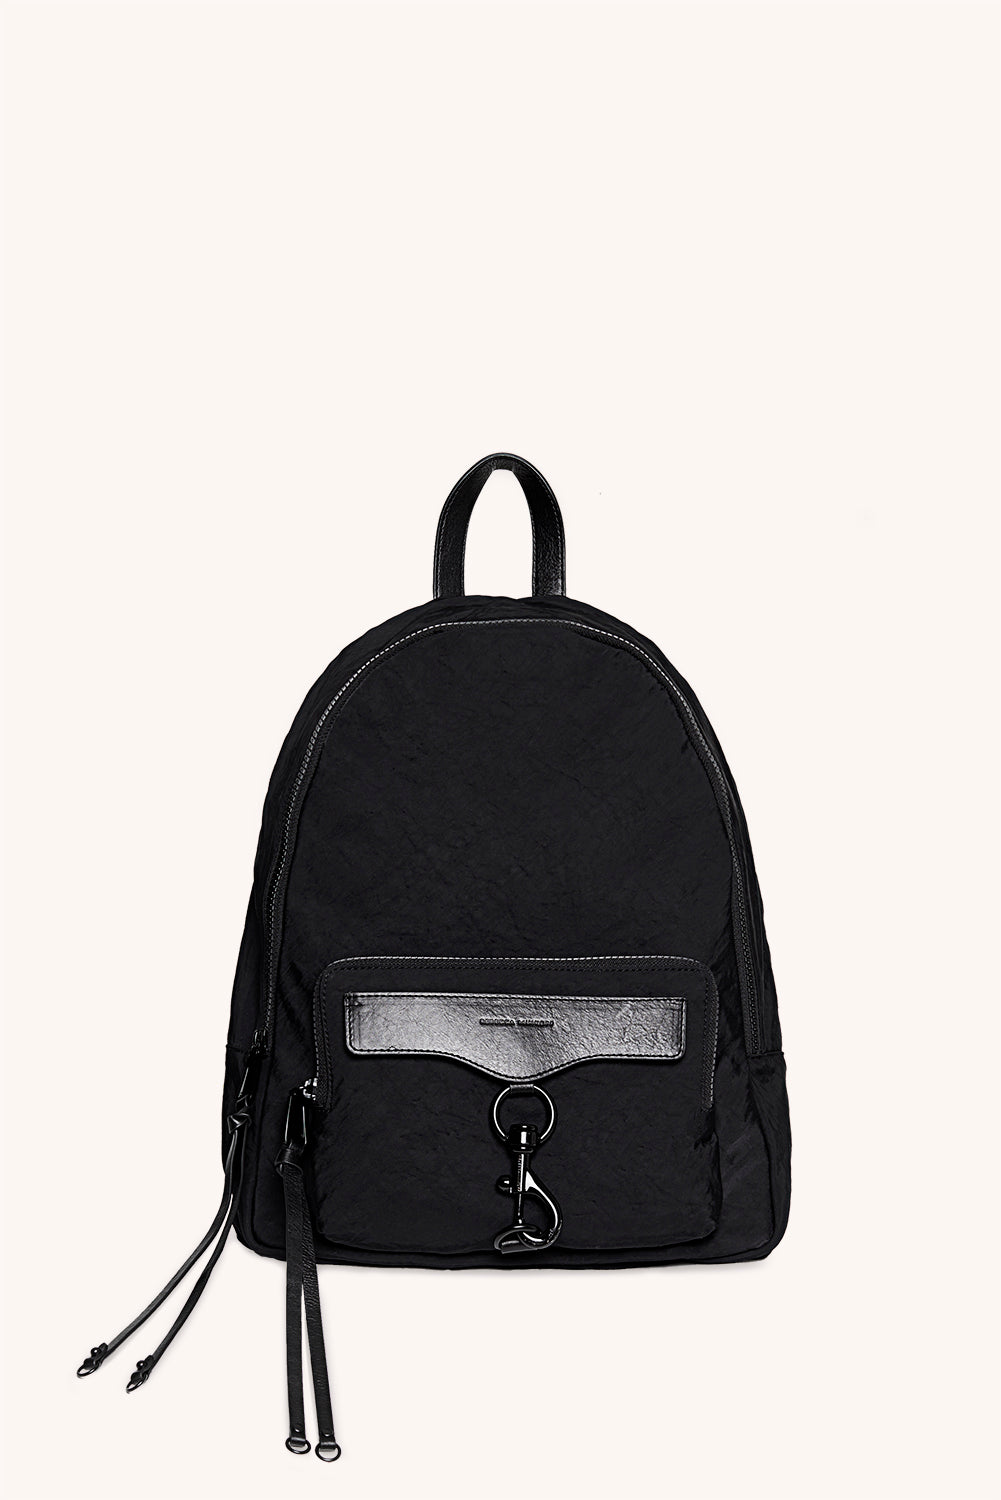 Rebecca-Minkoff M.A.B. Nylon Backpack